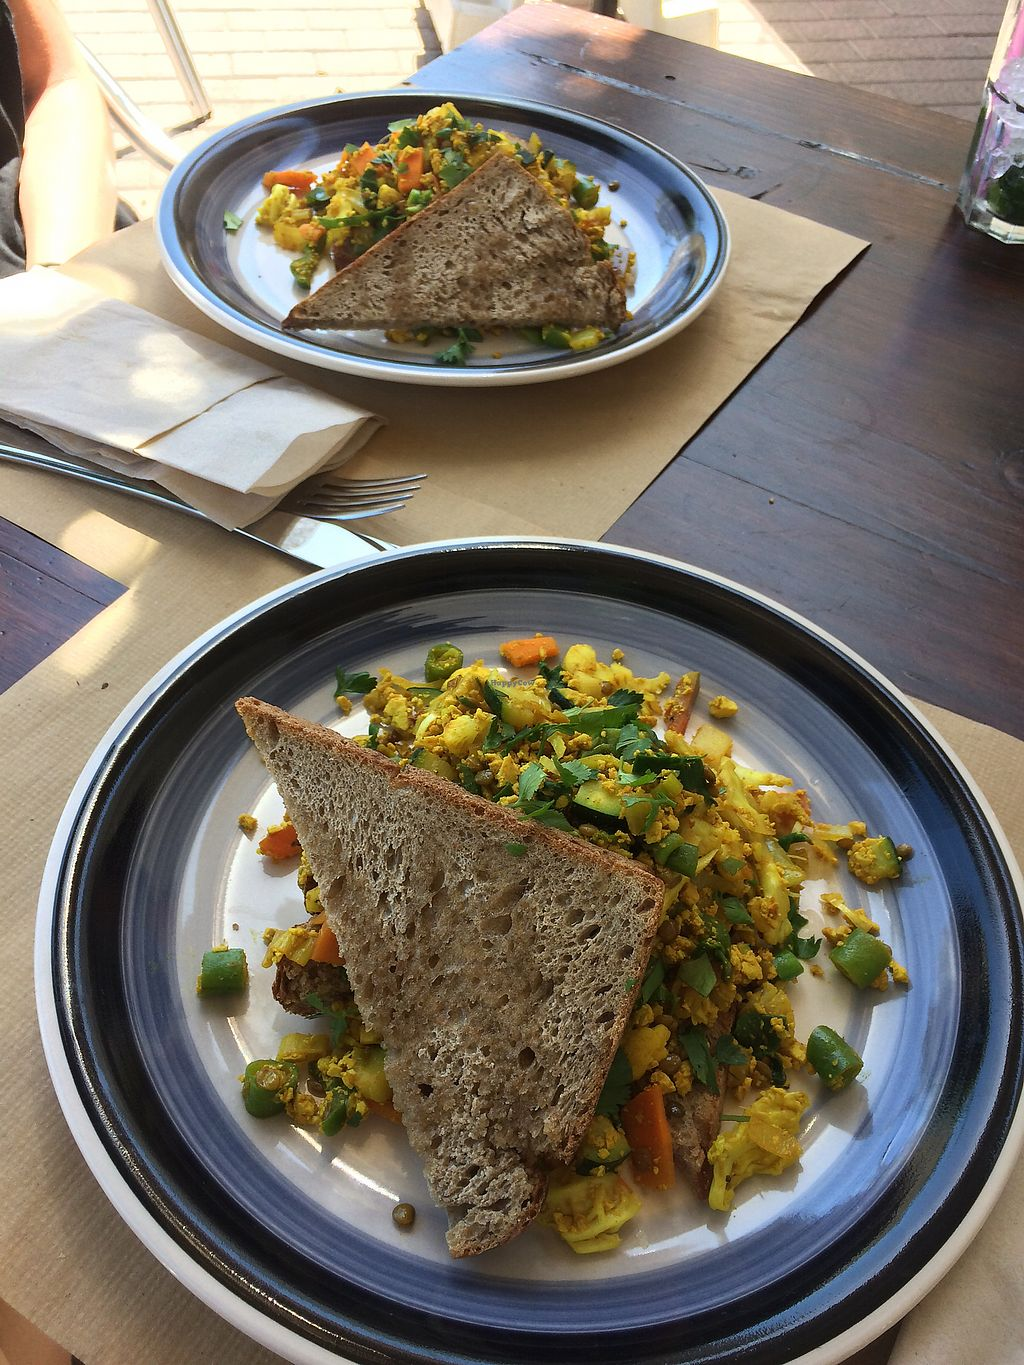 "Photo of Bistro Arbol  by <a href=""/members/profile/EvaDelagrange"">EvaDelagrange</a> <br/>Tofu scramble  <br/> March 29, 2018  - <a href='/contact/abuse/image/97212/377713'>Report</a>"